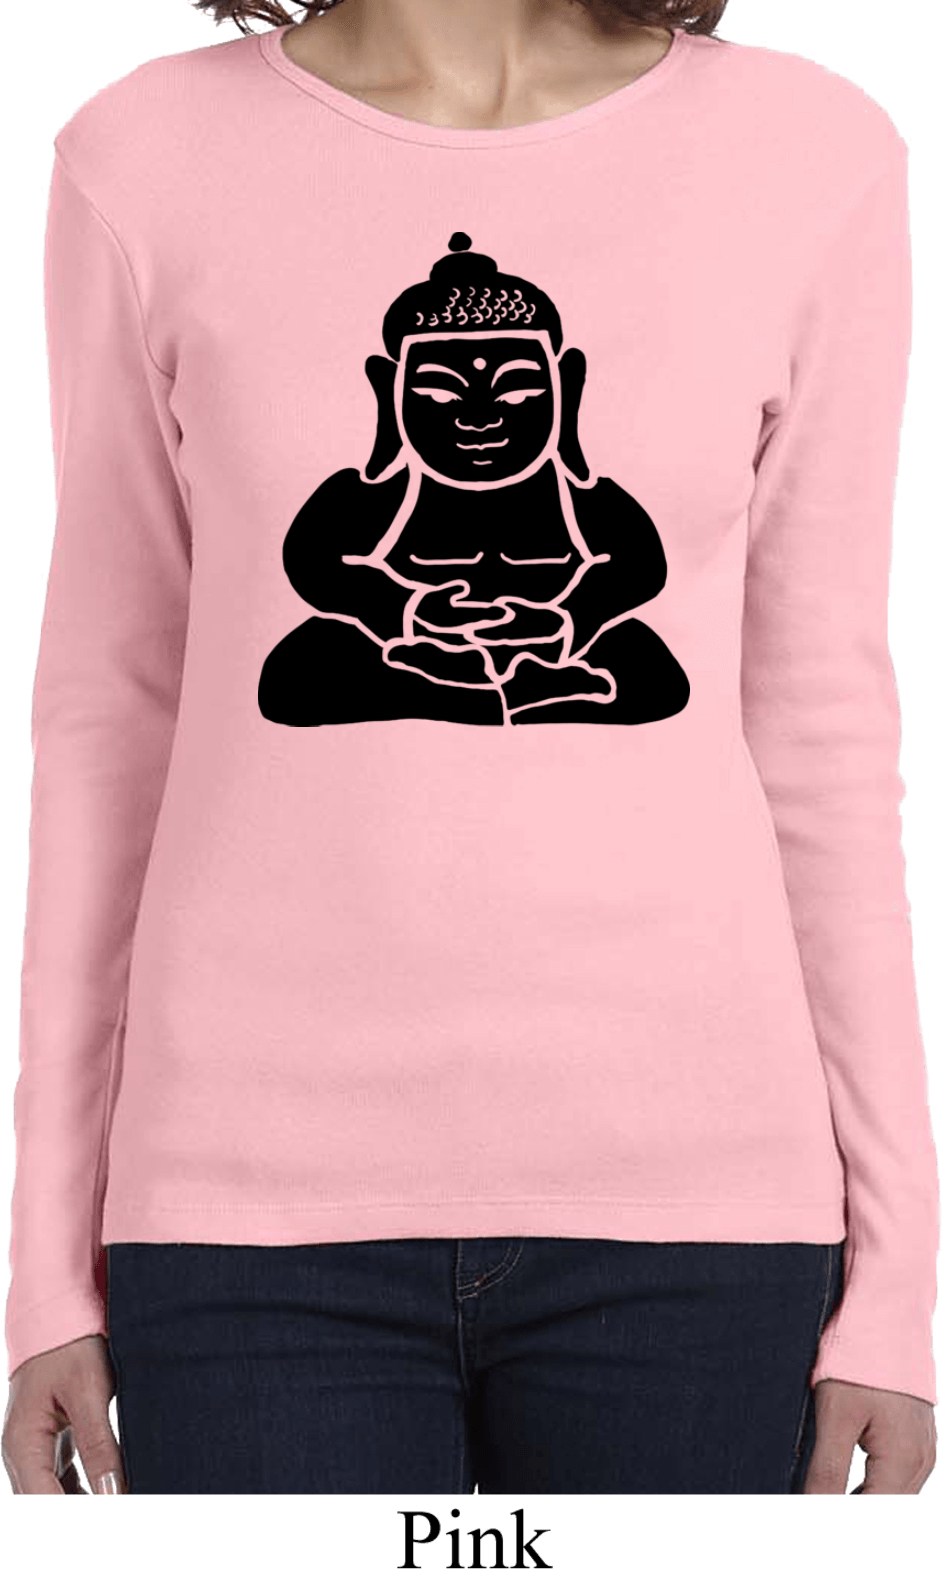 Ladies yoga shirt shadow buddha long sleeve tee t shirt Yoga shirts with sleeves